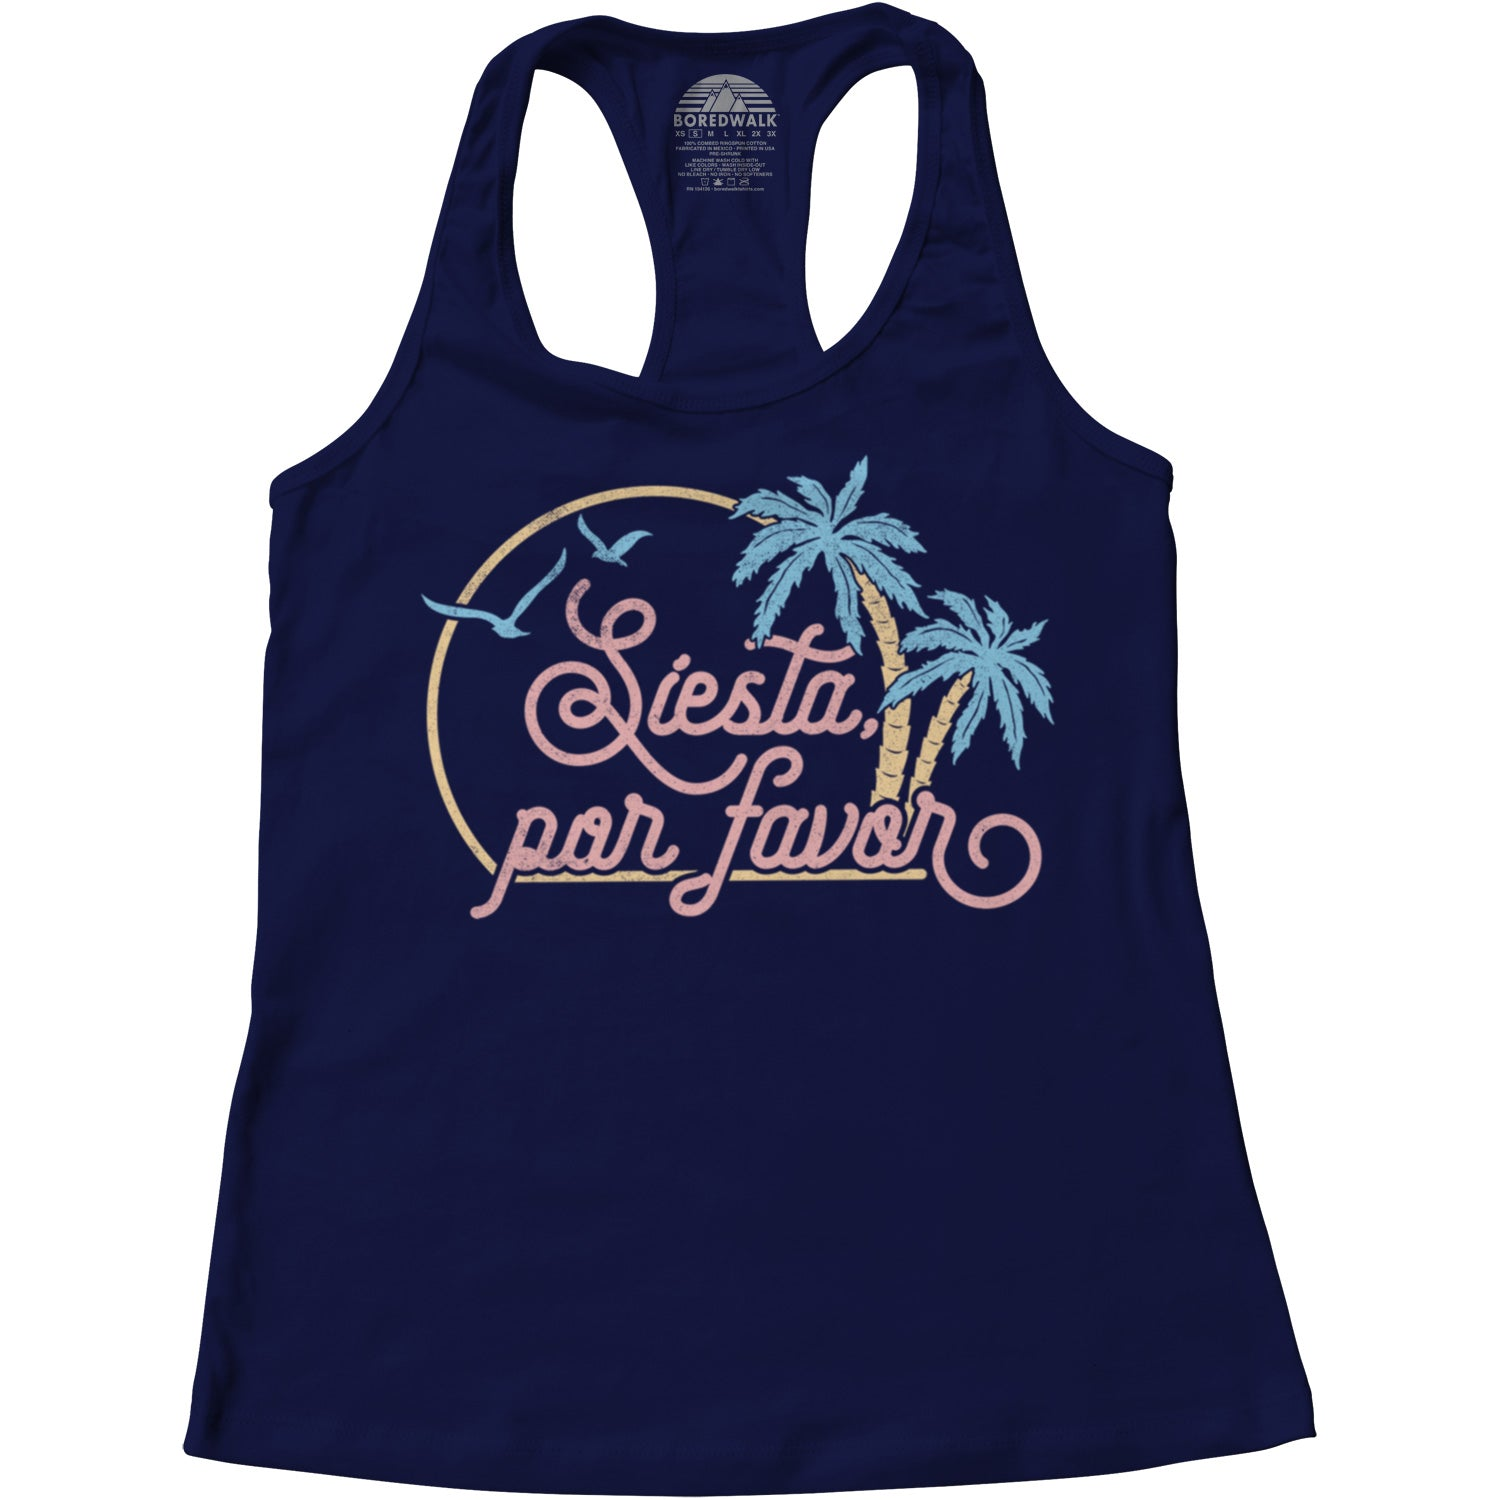 Women's Siesta Por Favor Racerback Tank Top